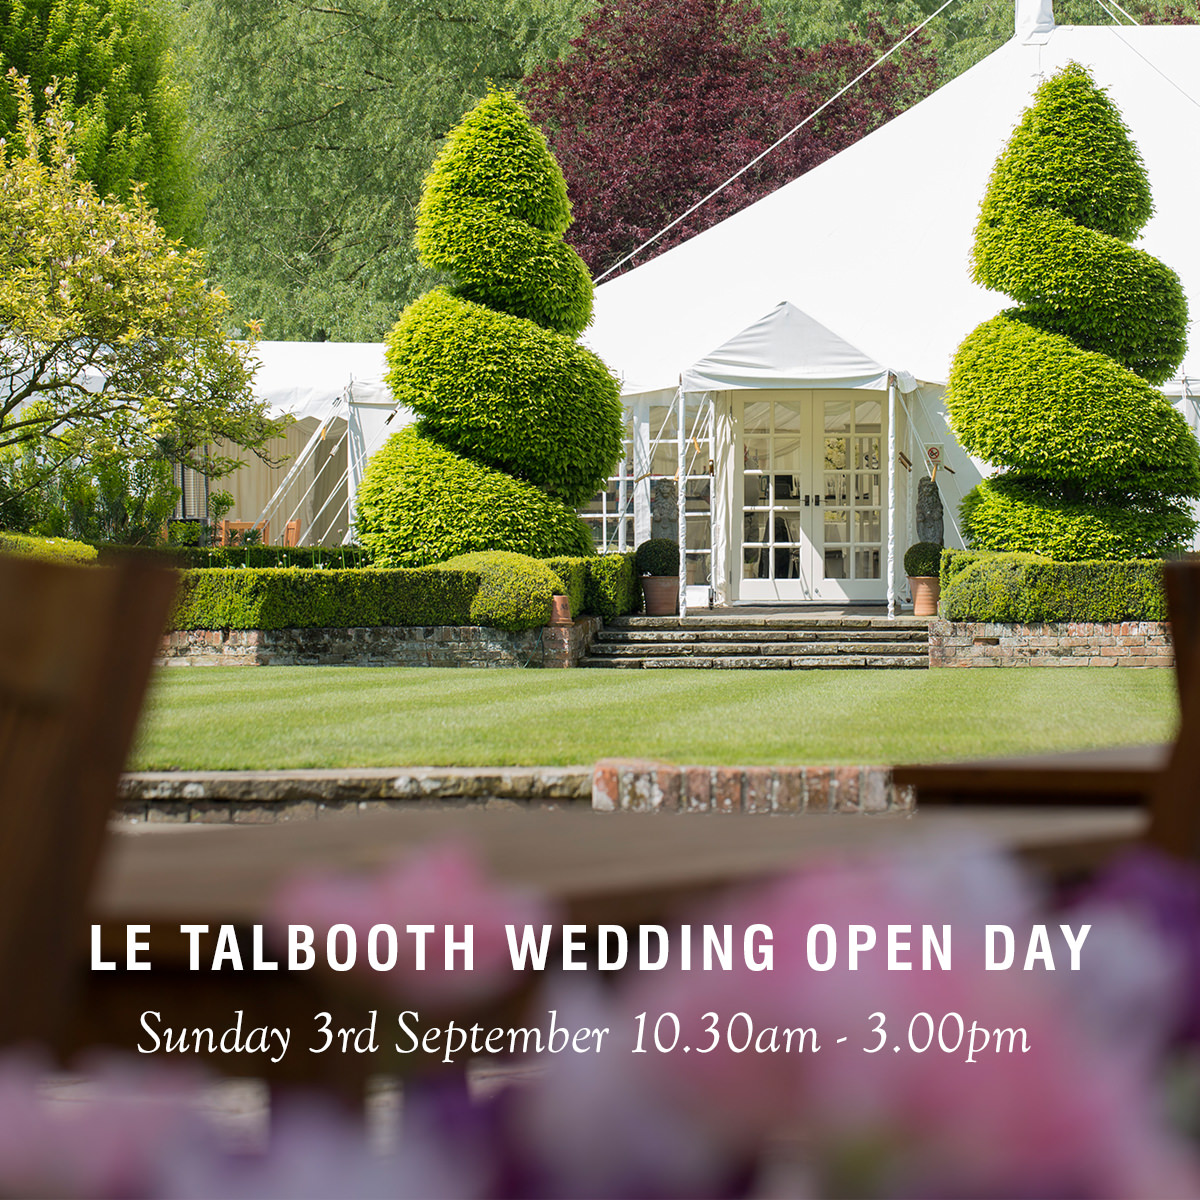 Wedding Flowers Keighley: Le Talbooth Marquee Wedding Open Day